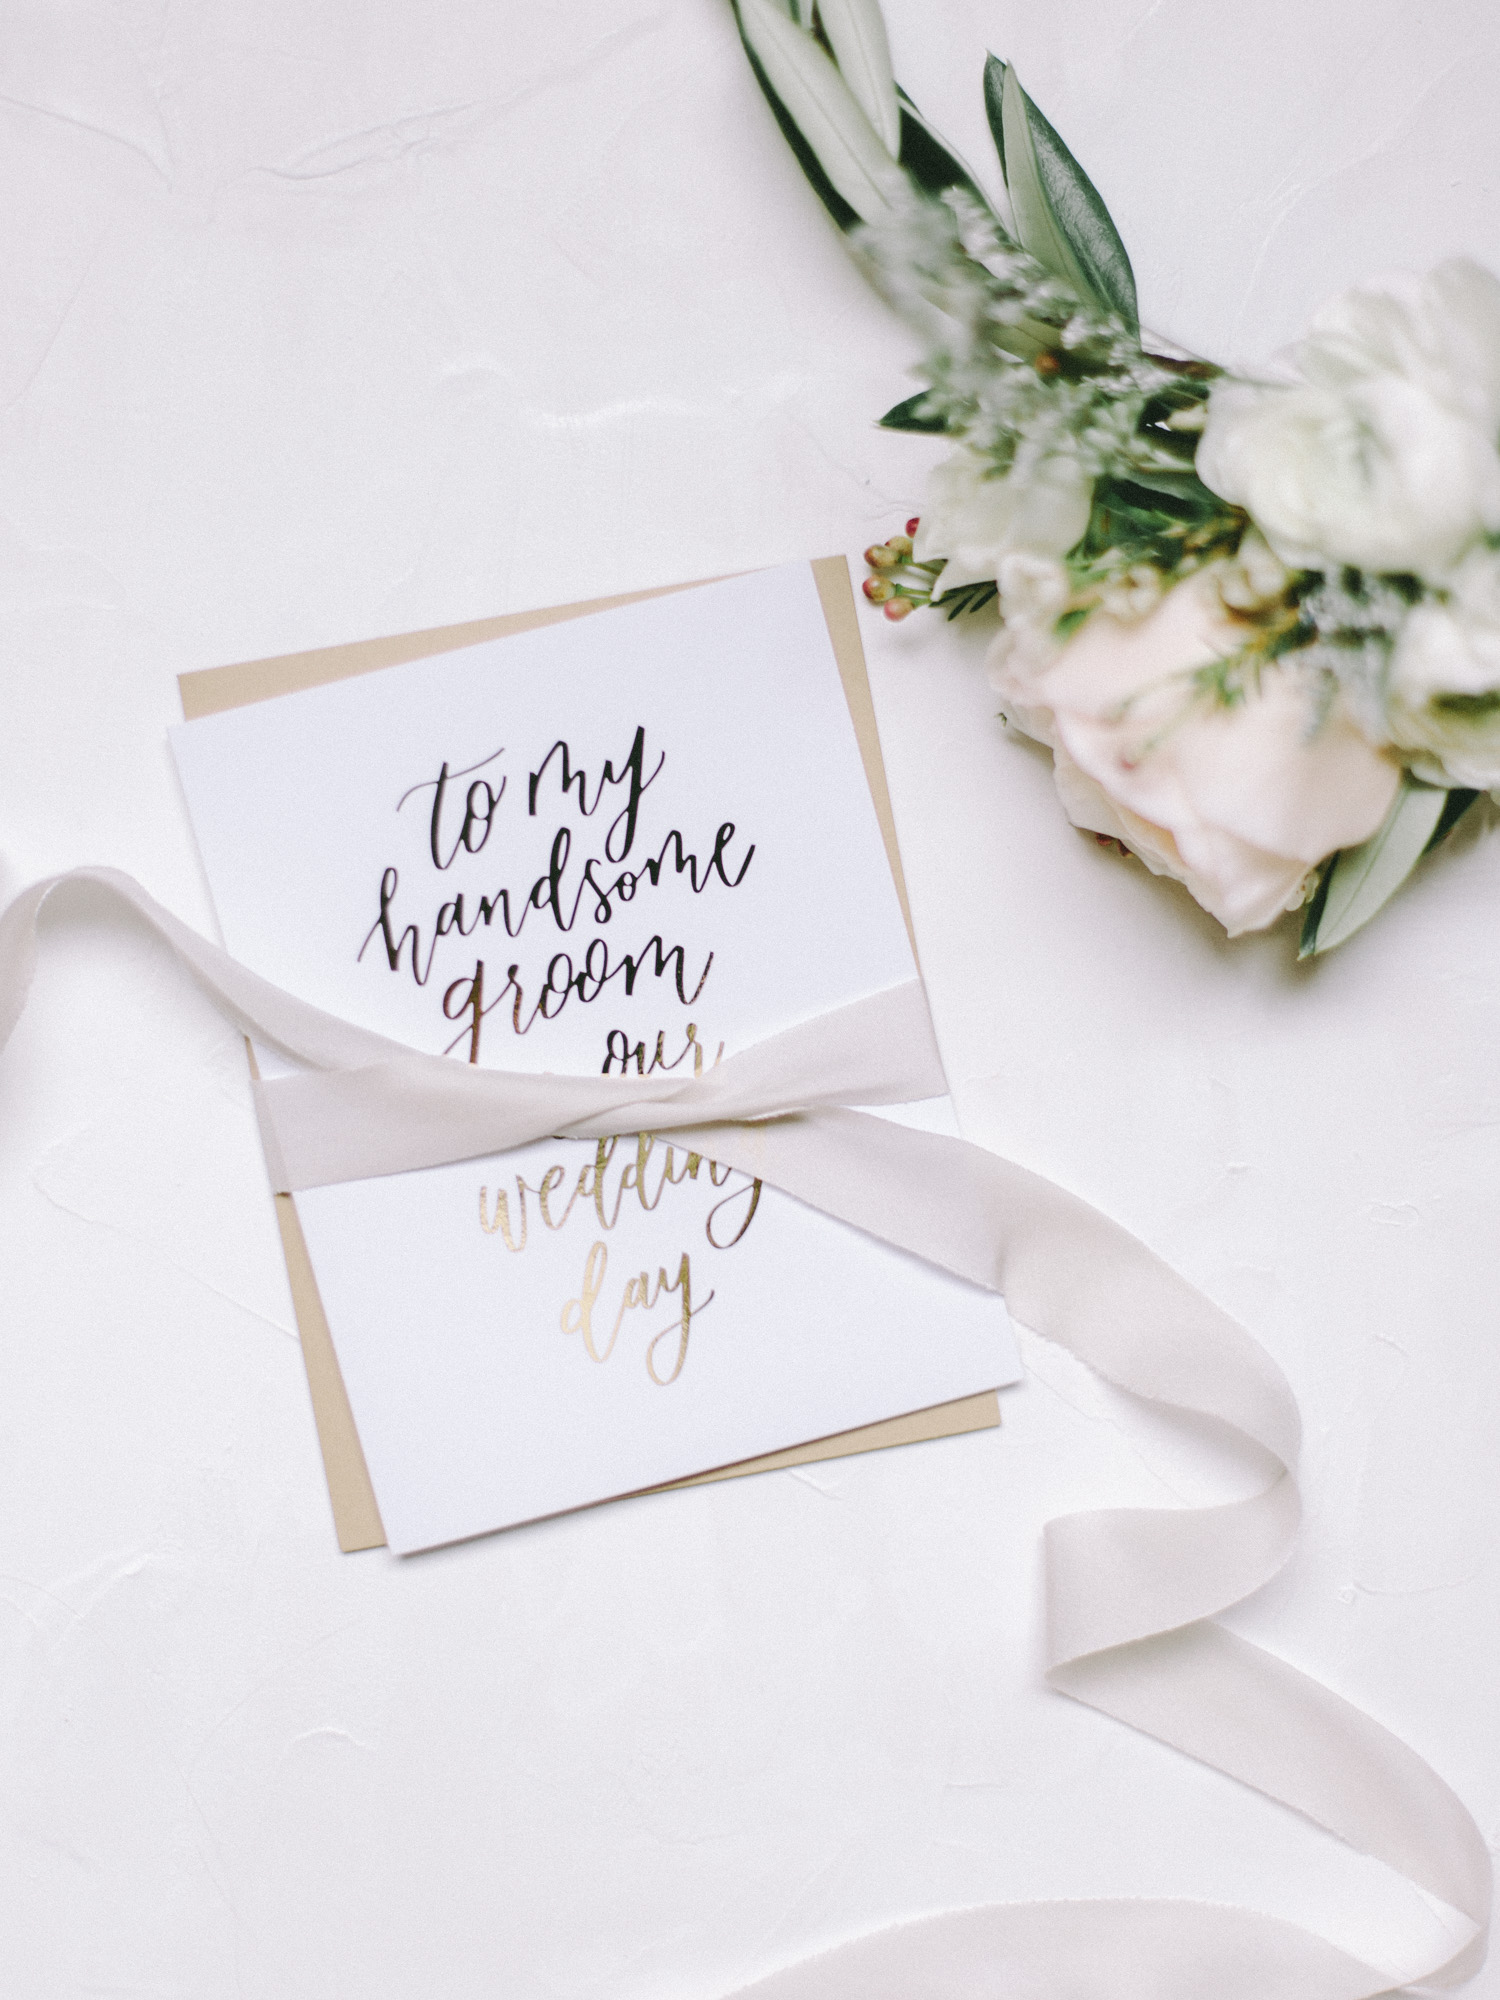 A card from the bride to her groom on their wedding day, wrapped in ribbon resting on a white background